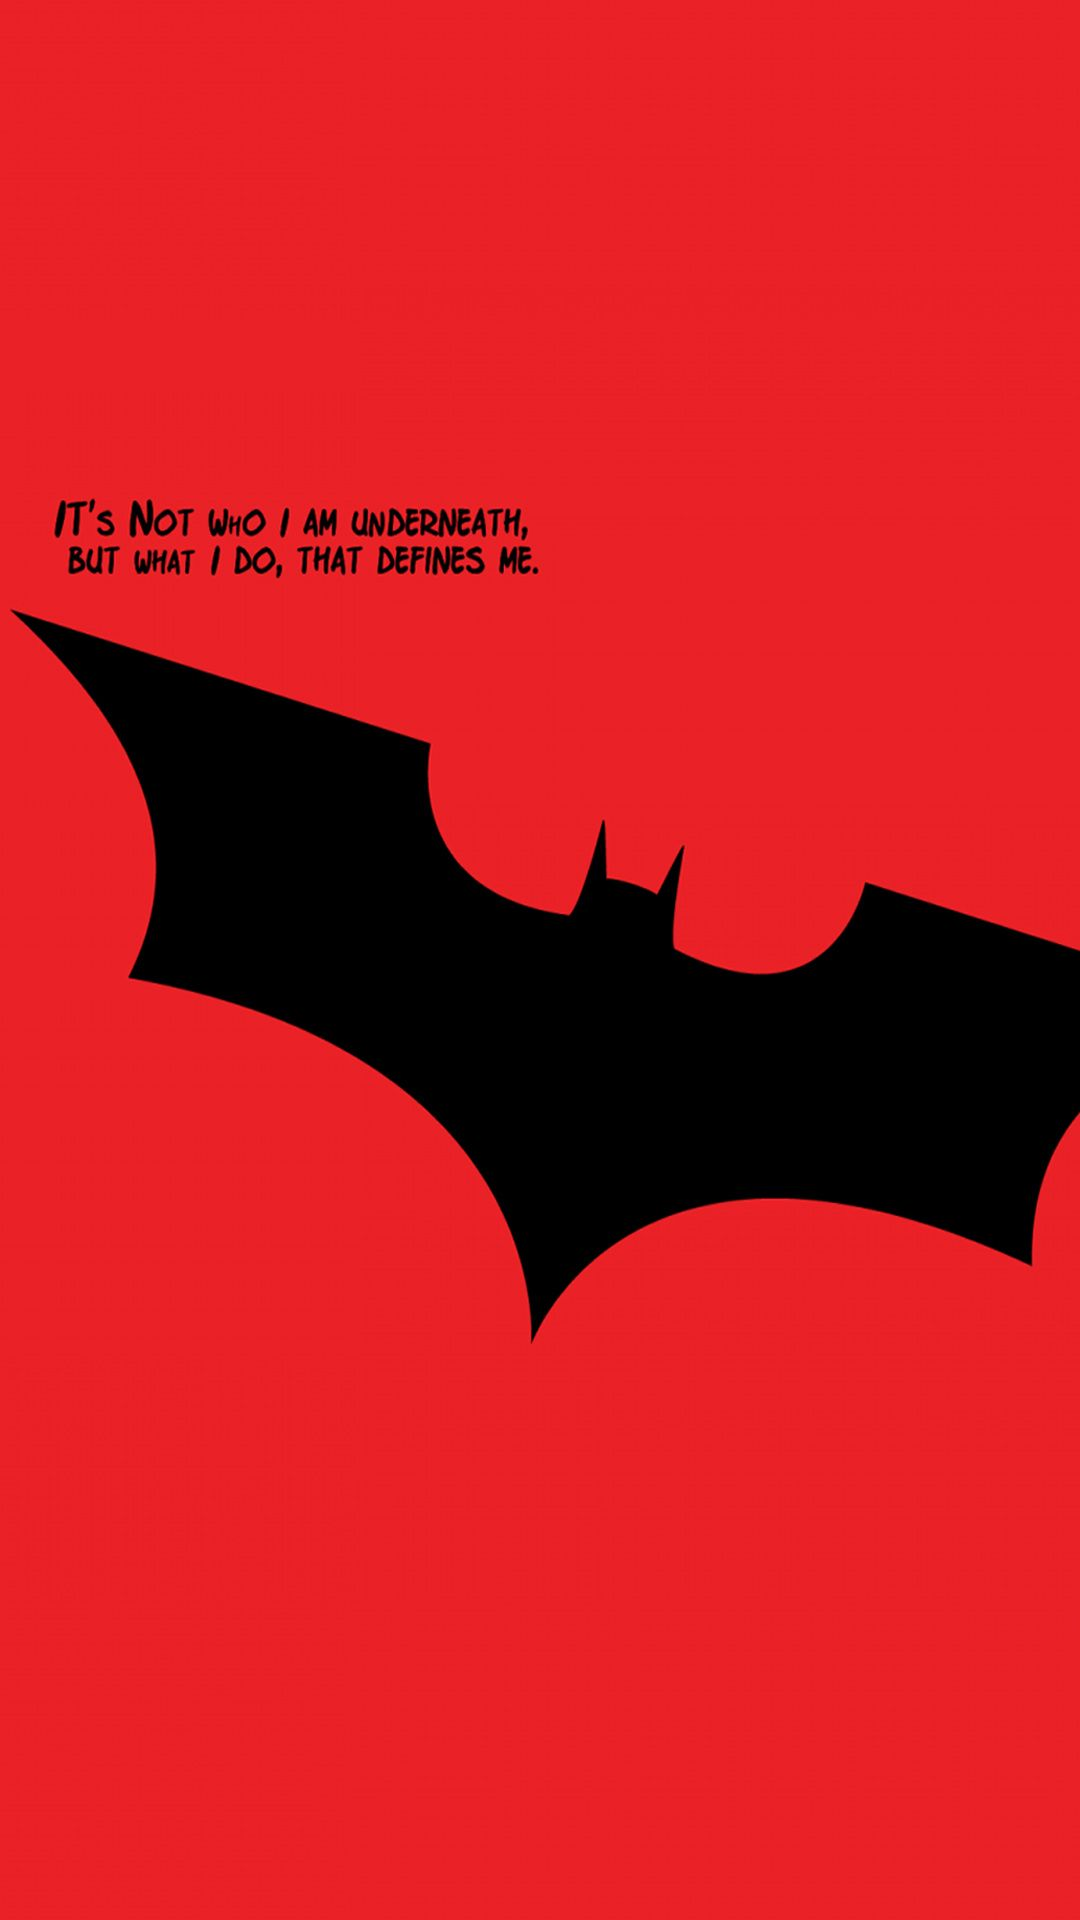 Batman Quotes Minimal Red 4k Ultra Hd Mobile Wallpaper In 2020 Batman Quotes Batman Wallpaper Superhero Quotes